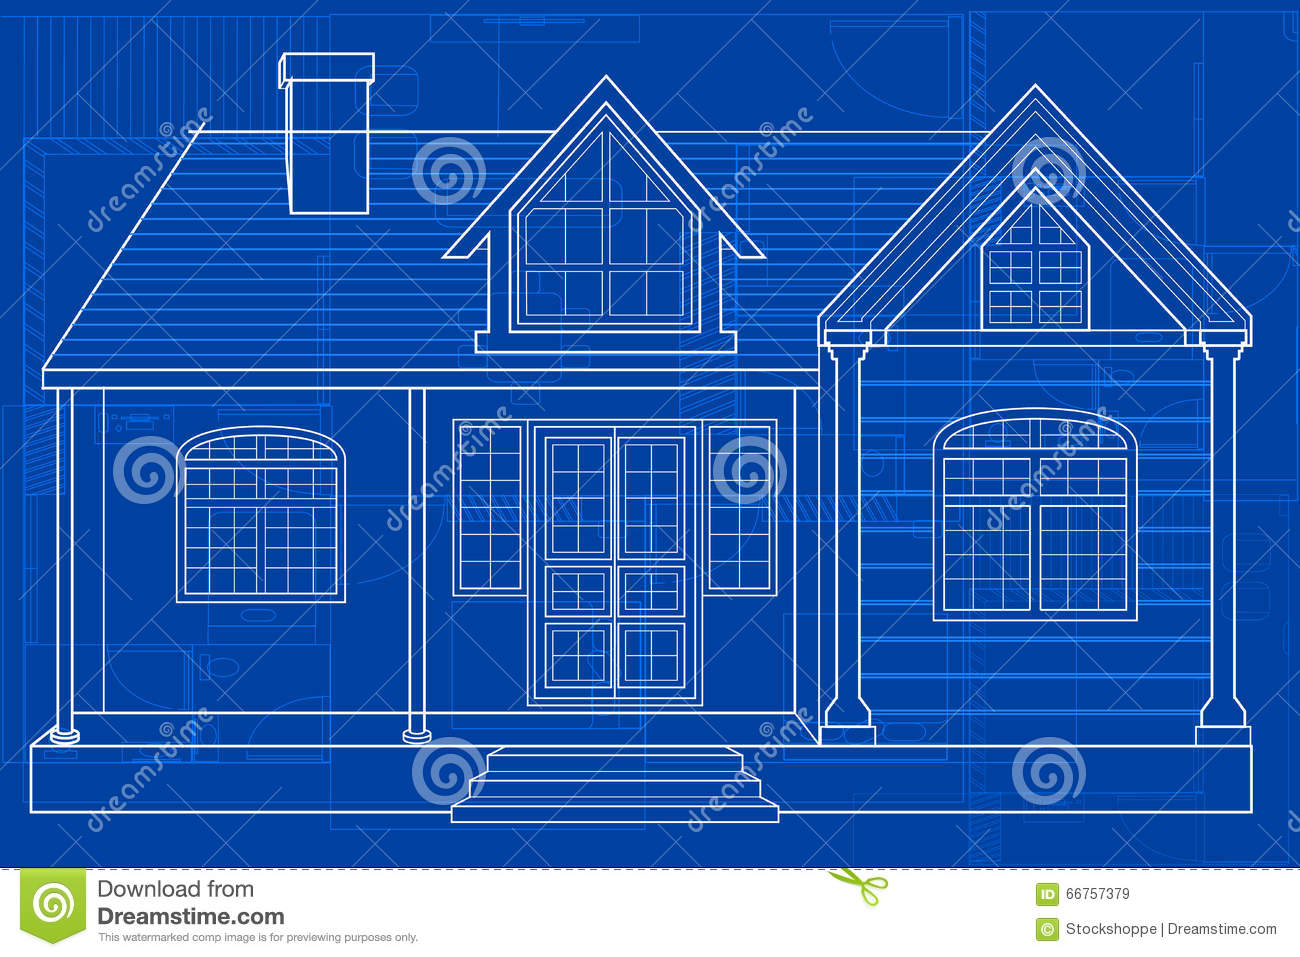 Blueprint of building stock vector illustration of development blueprint of building stock vector illustration of development 66757379 malvernweather